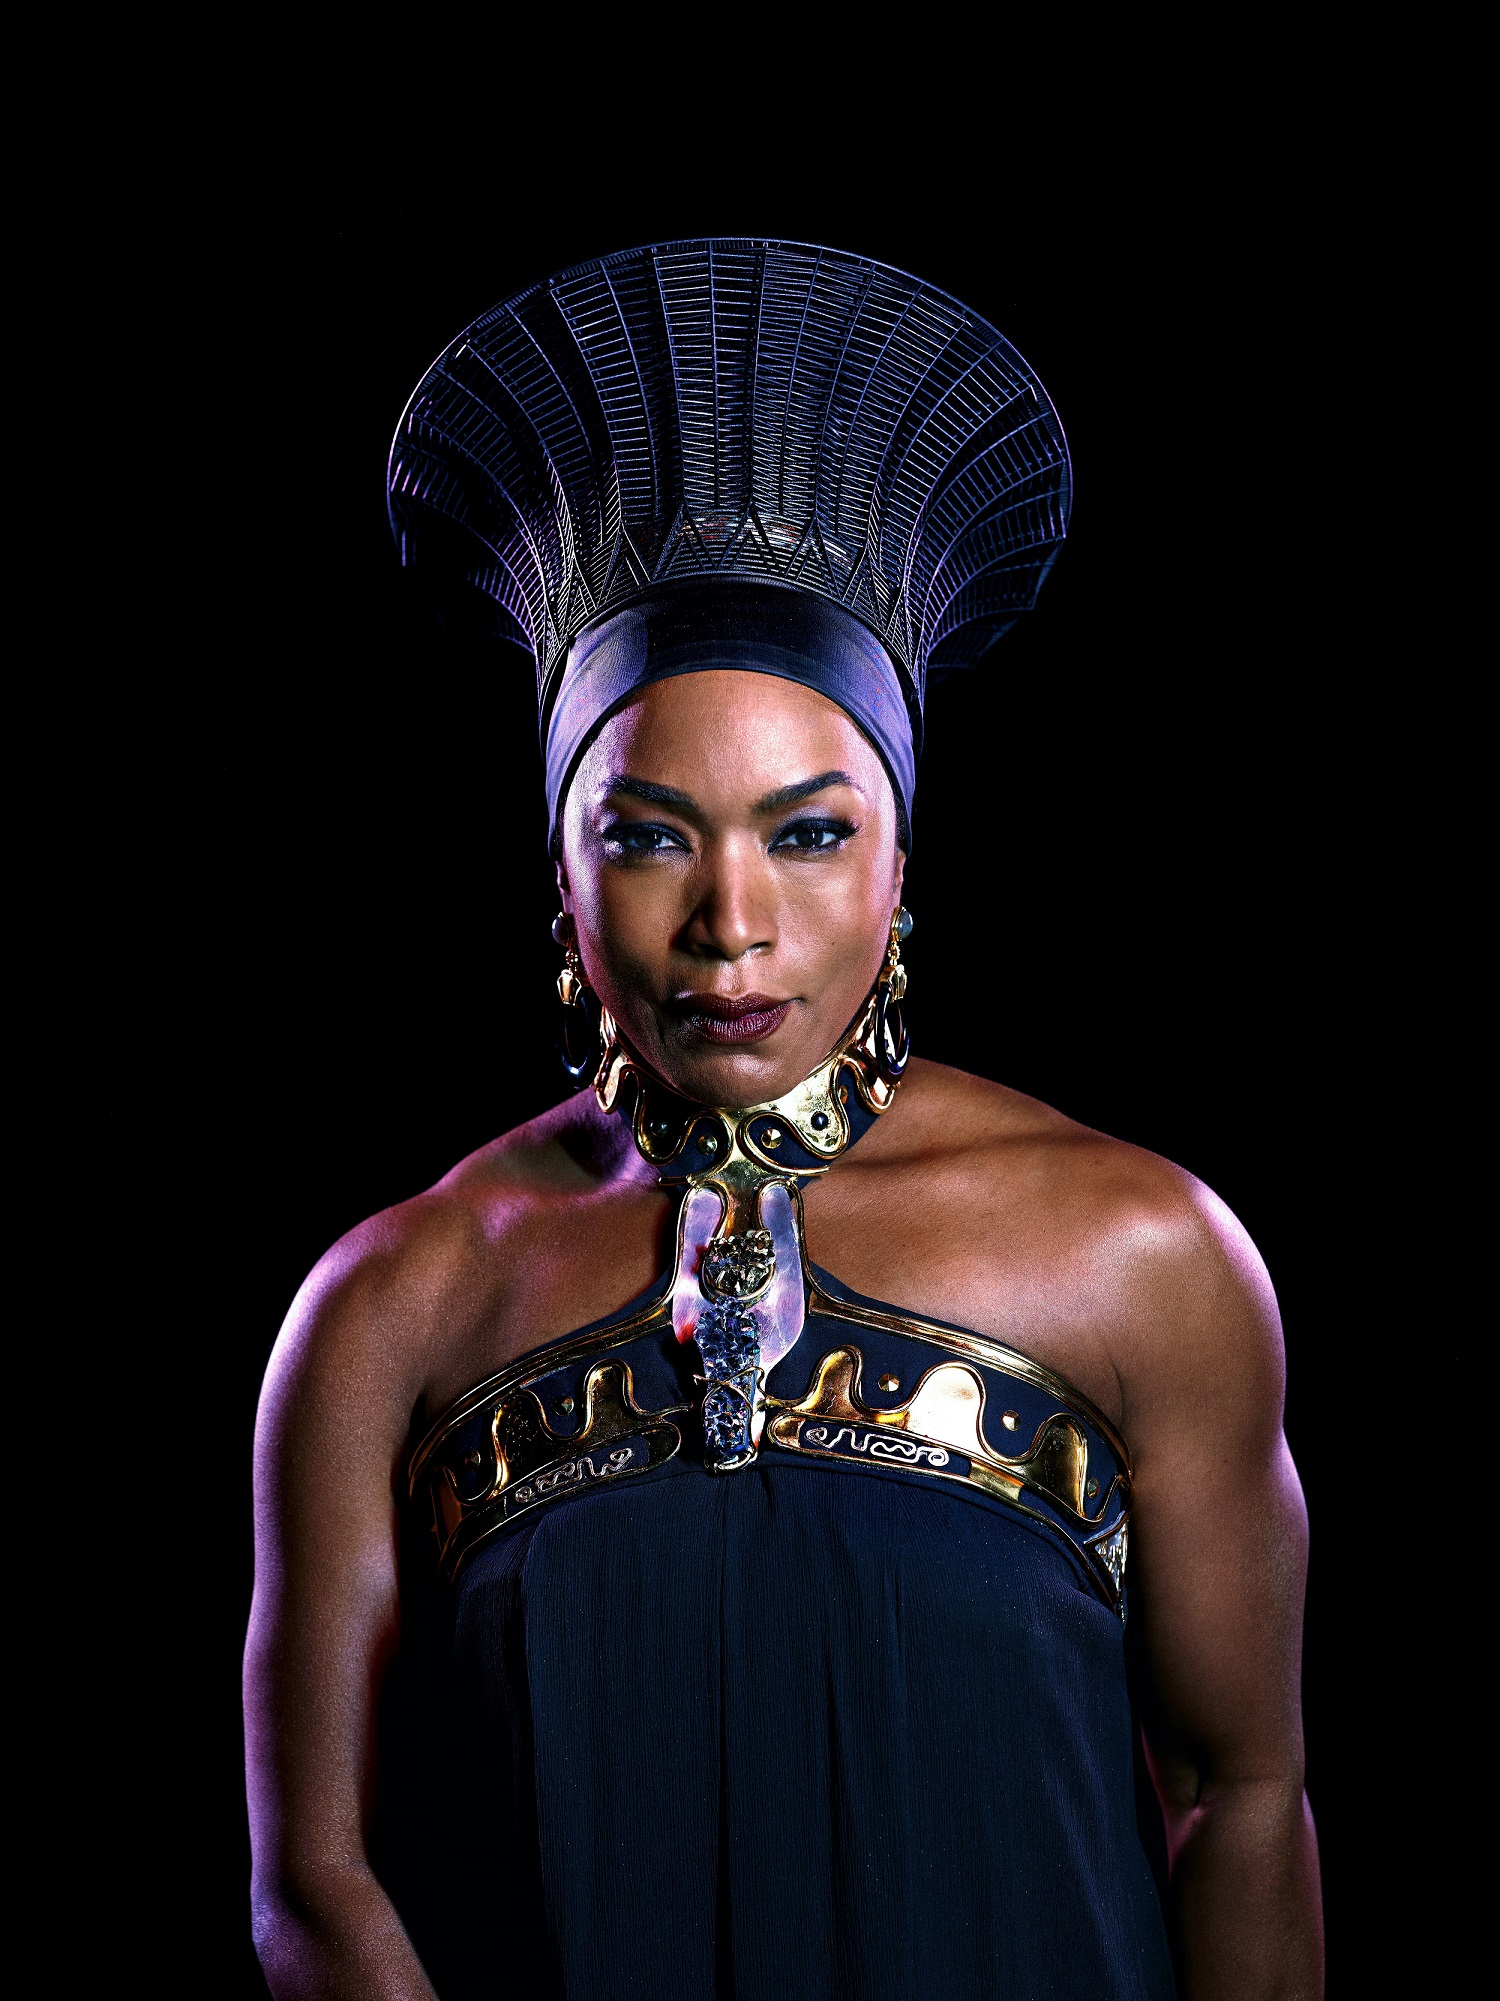 Angela Bassett as Queen Ramonda | Image courtesy of Marvel/Disney/Black Panther